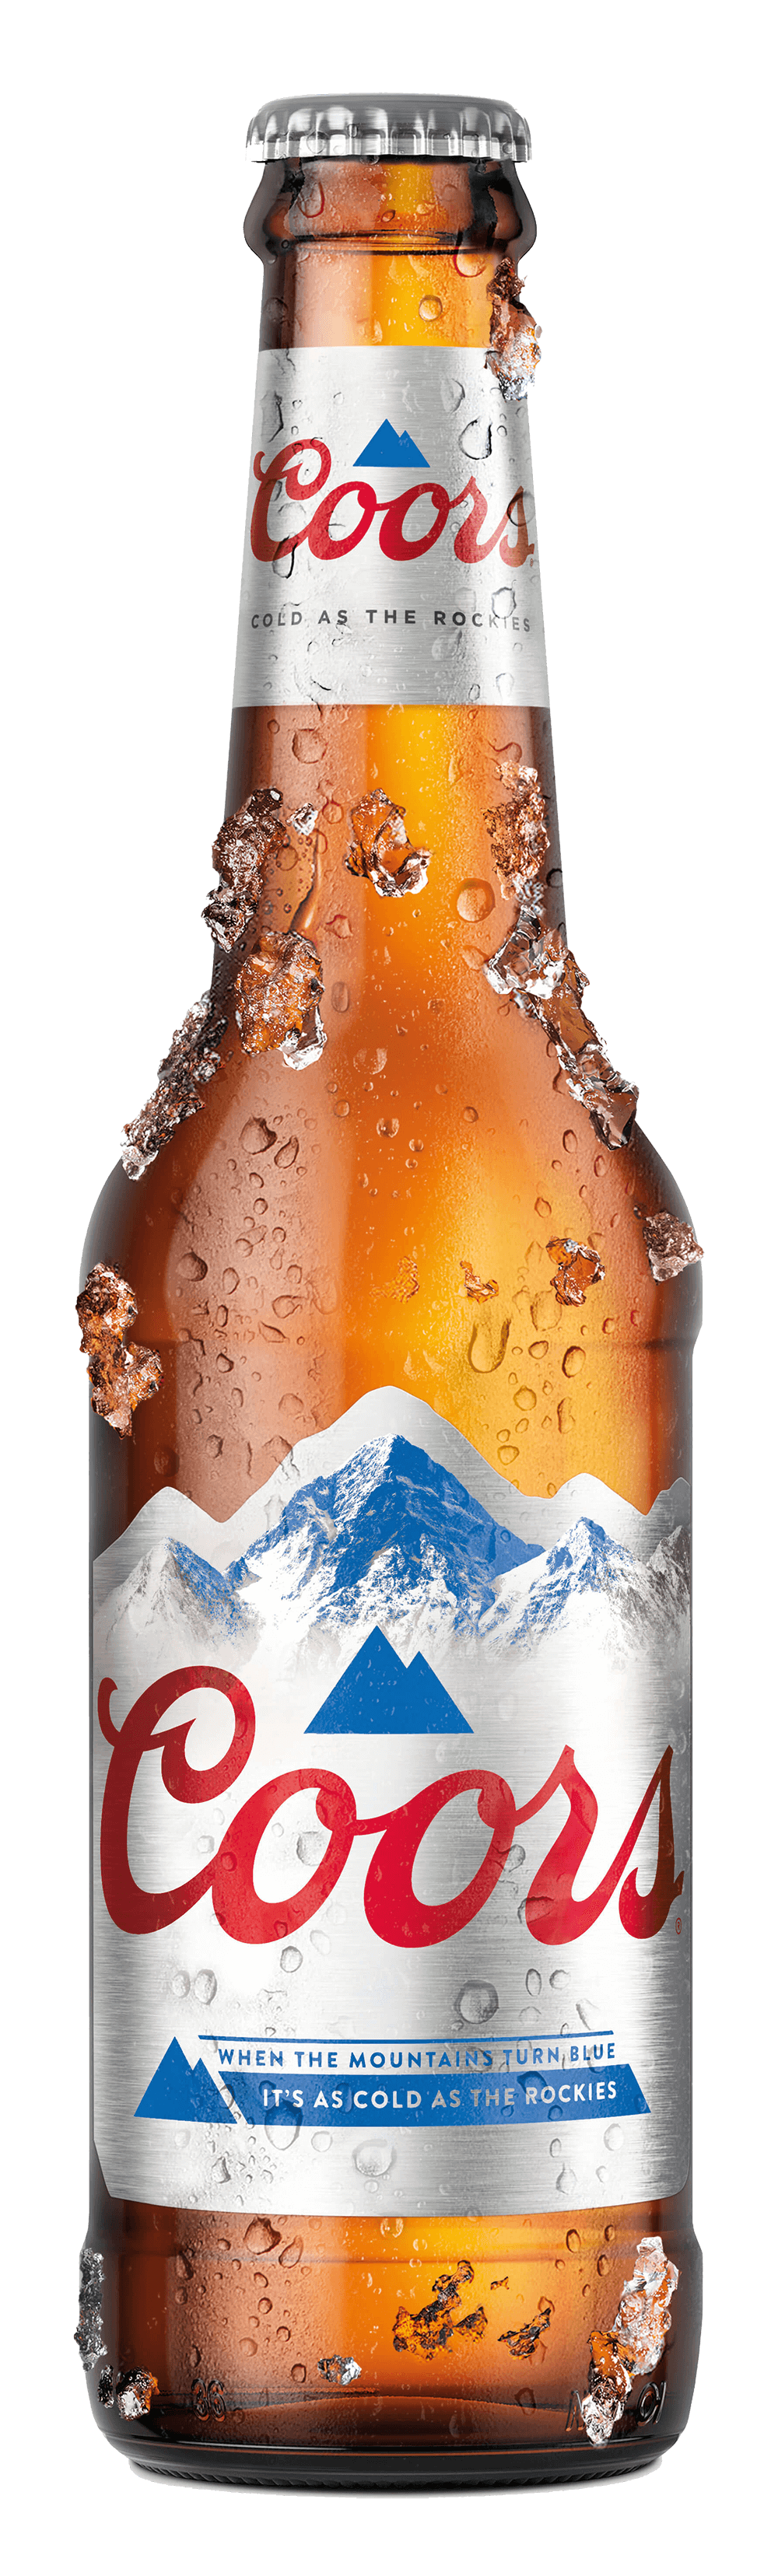 Coors 330 bottle iced